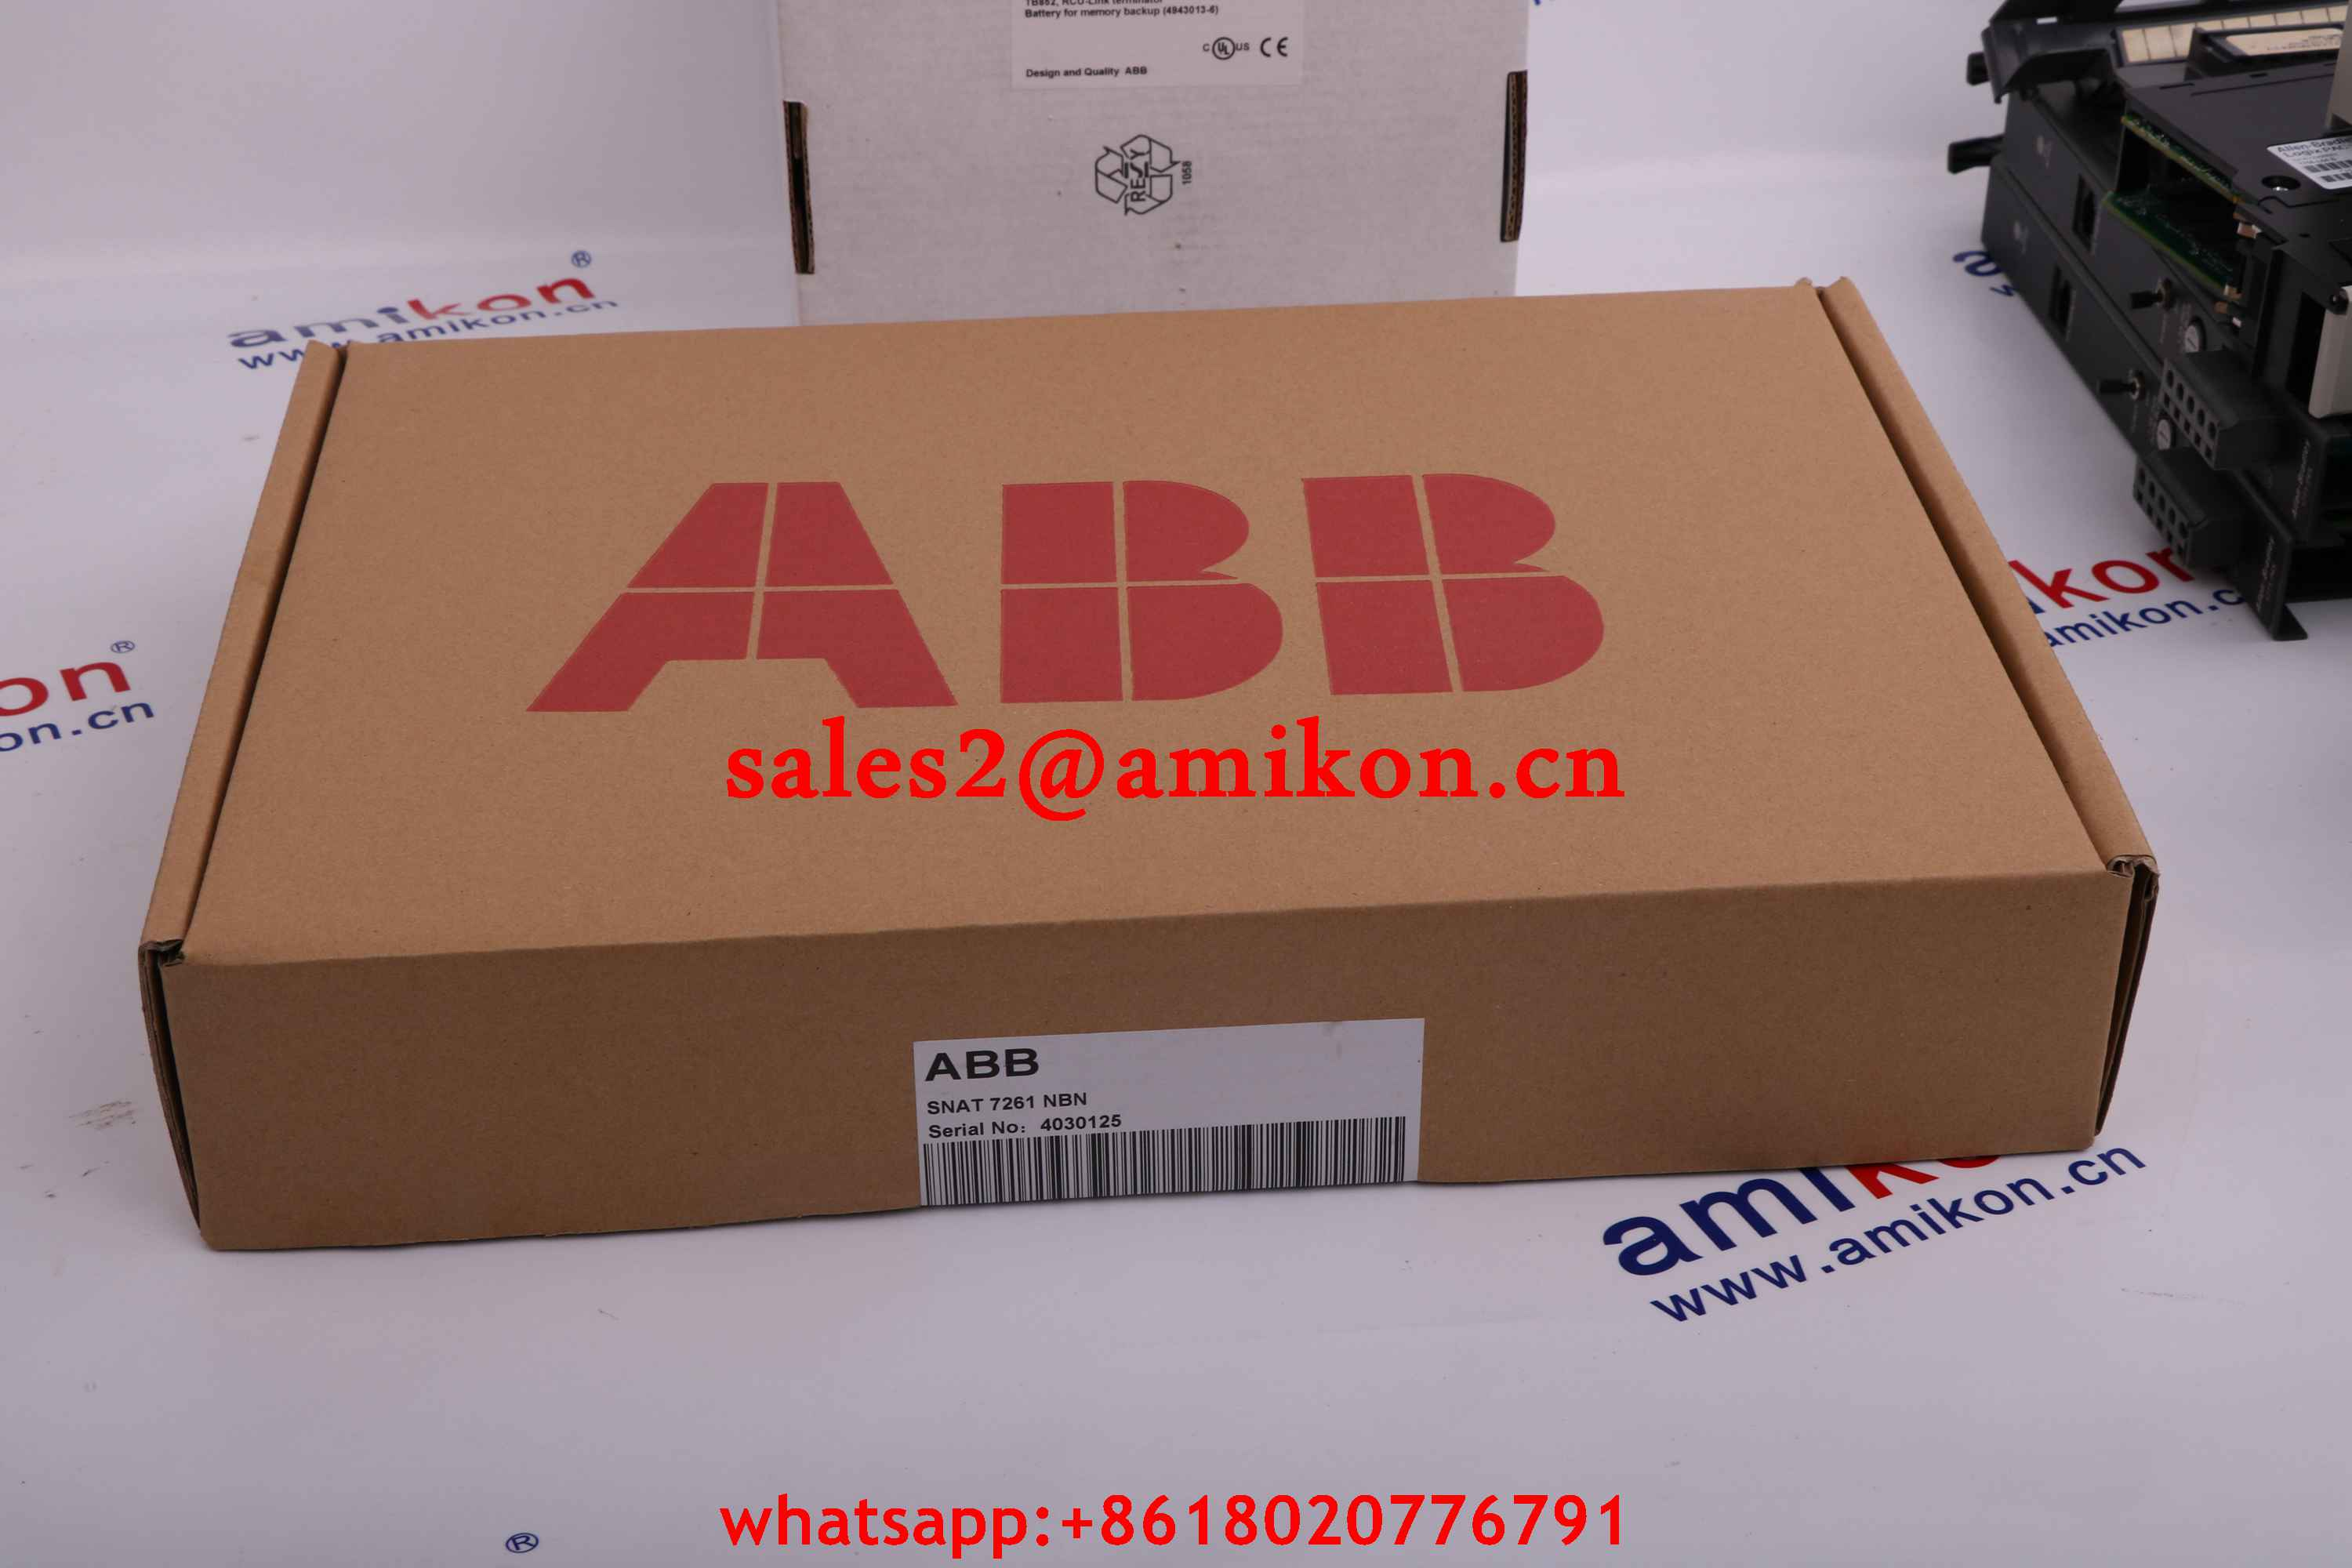 YB161102-AH DSDX 110 Digital in/output board ABB | Robot spare parts | PLC DCS Parts T/T 100% New In stock